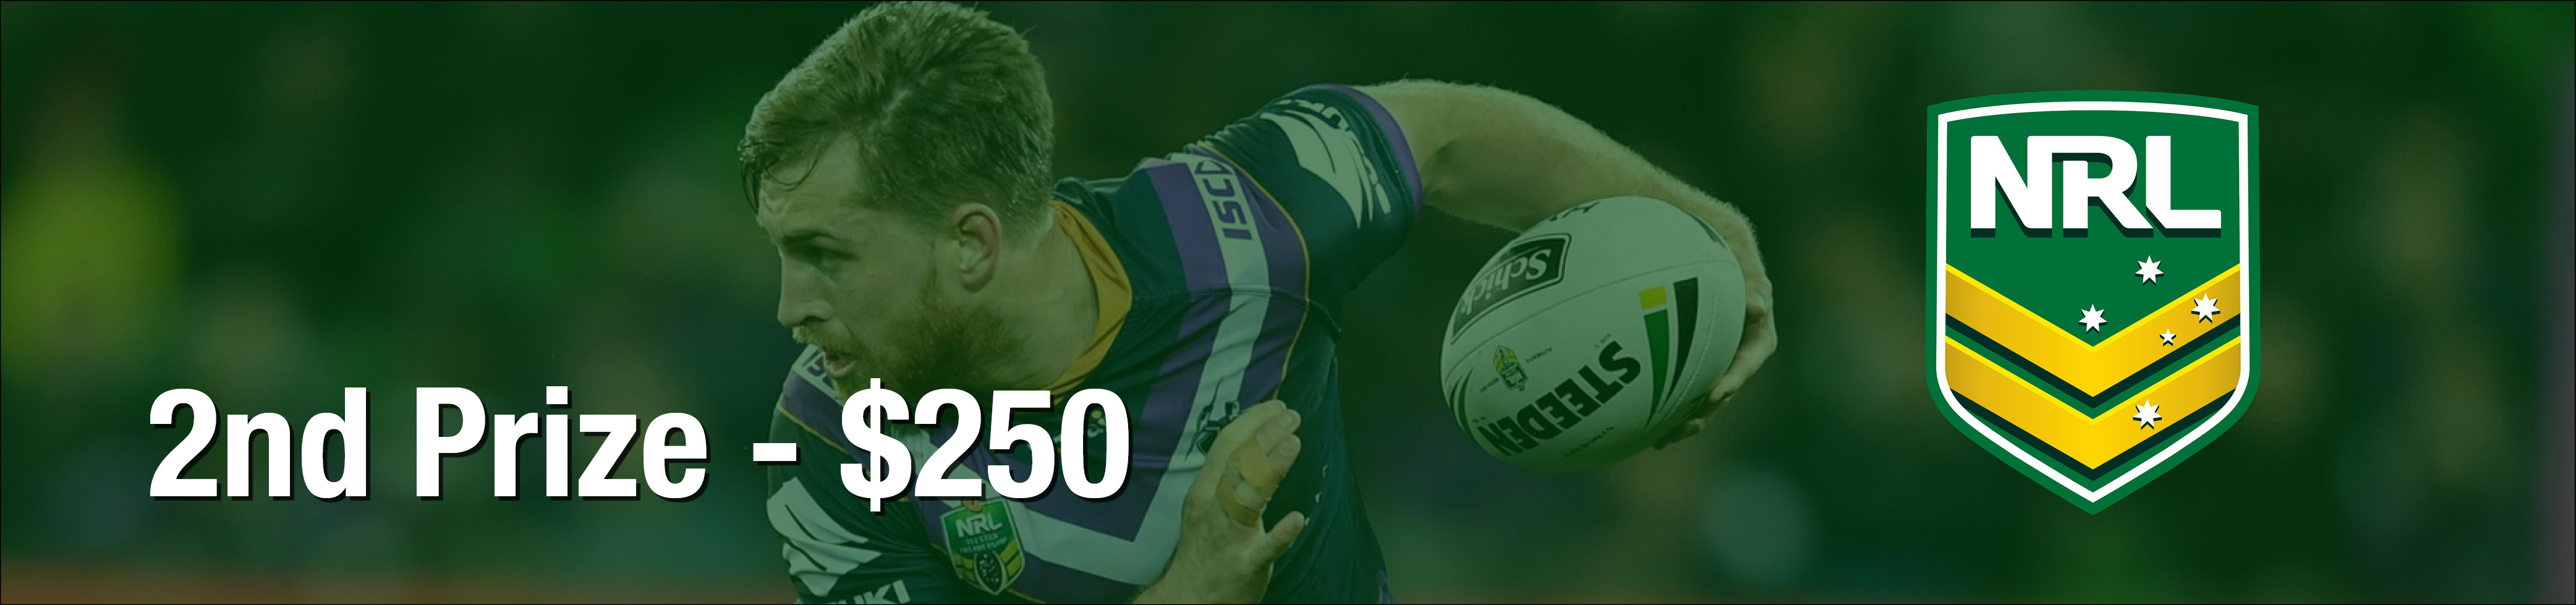 EXEDY NRL TIPPING COMP 2020